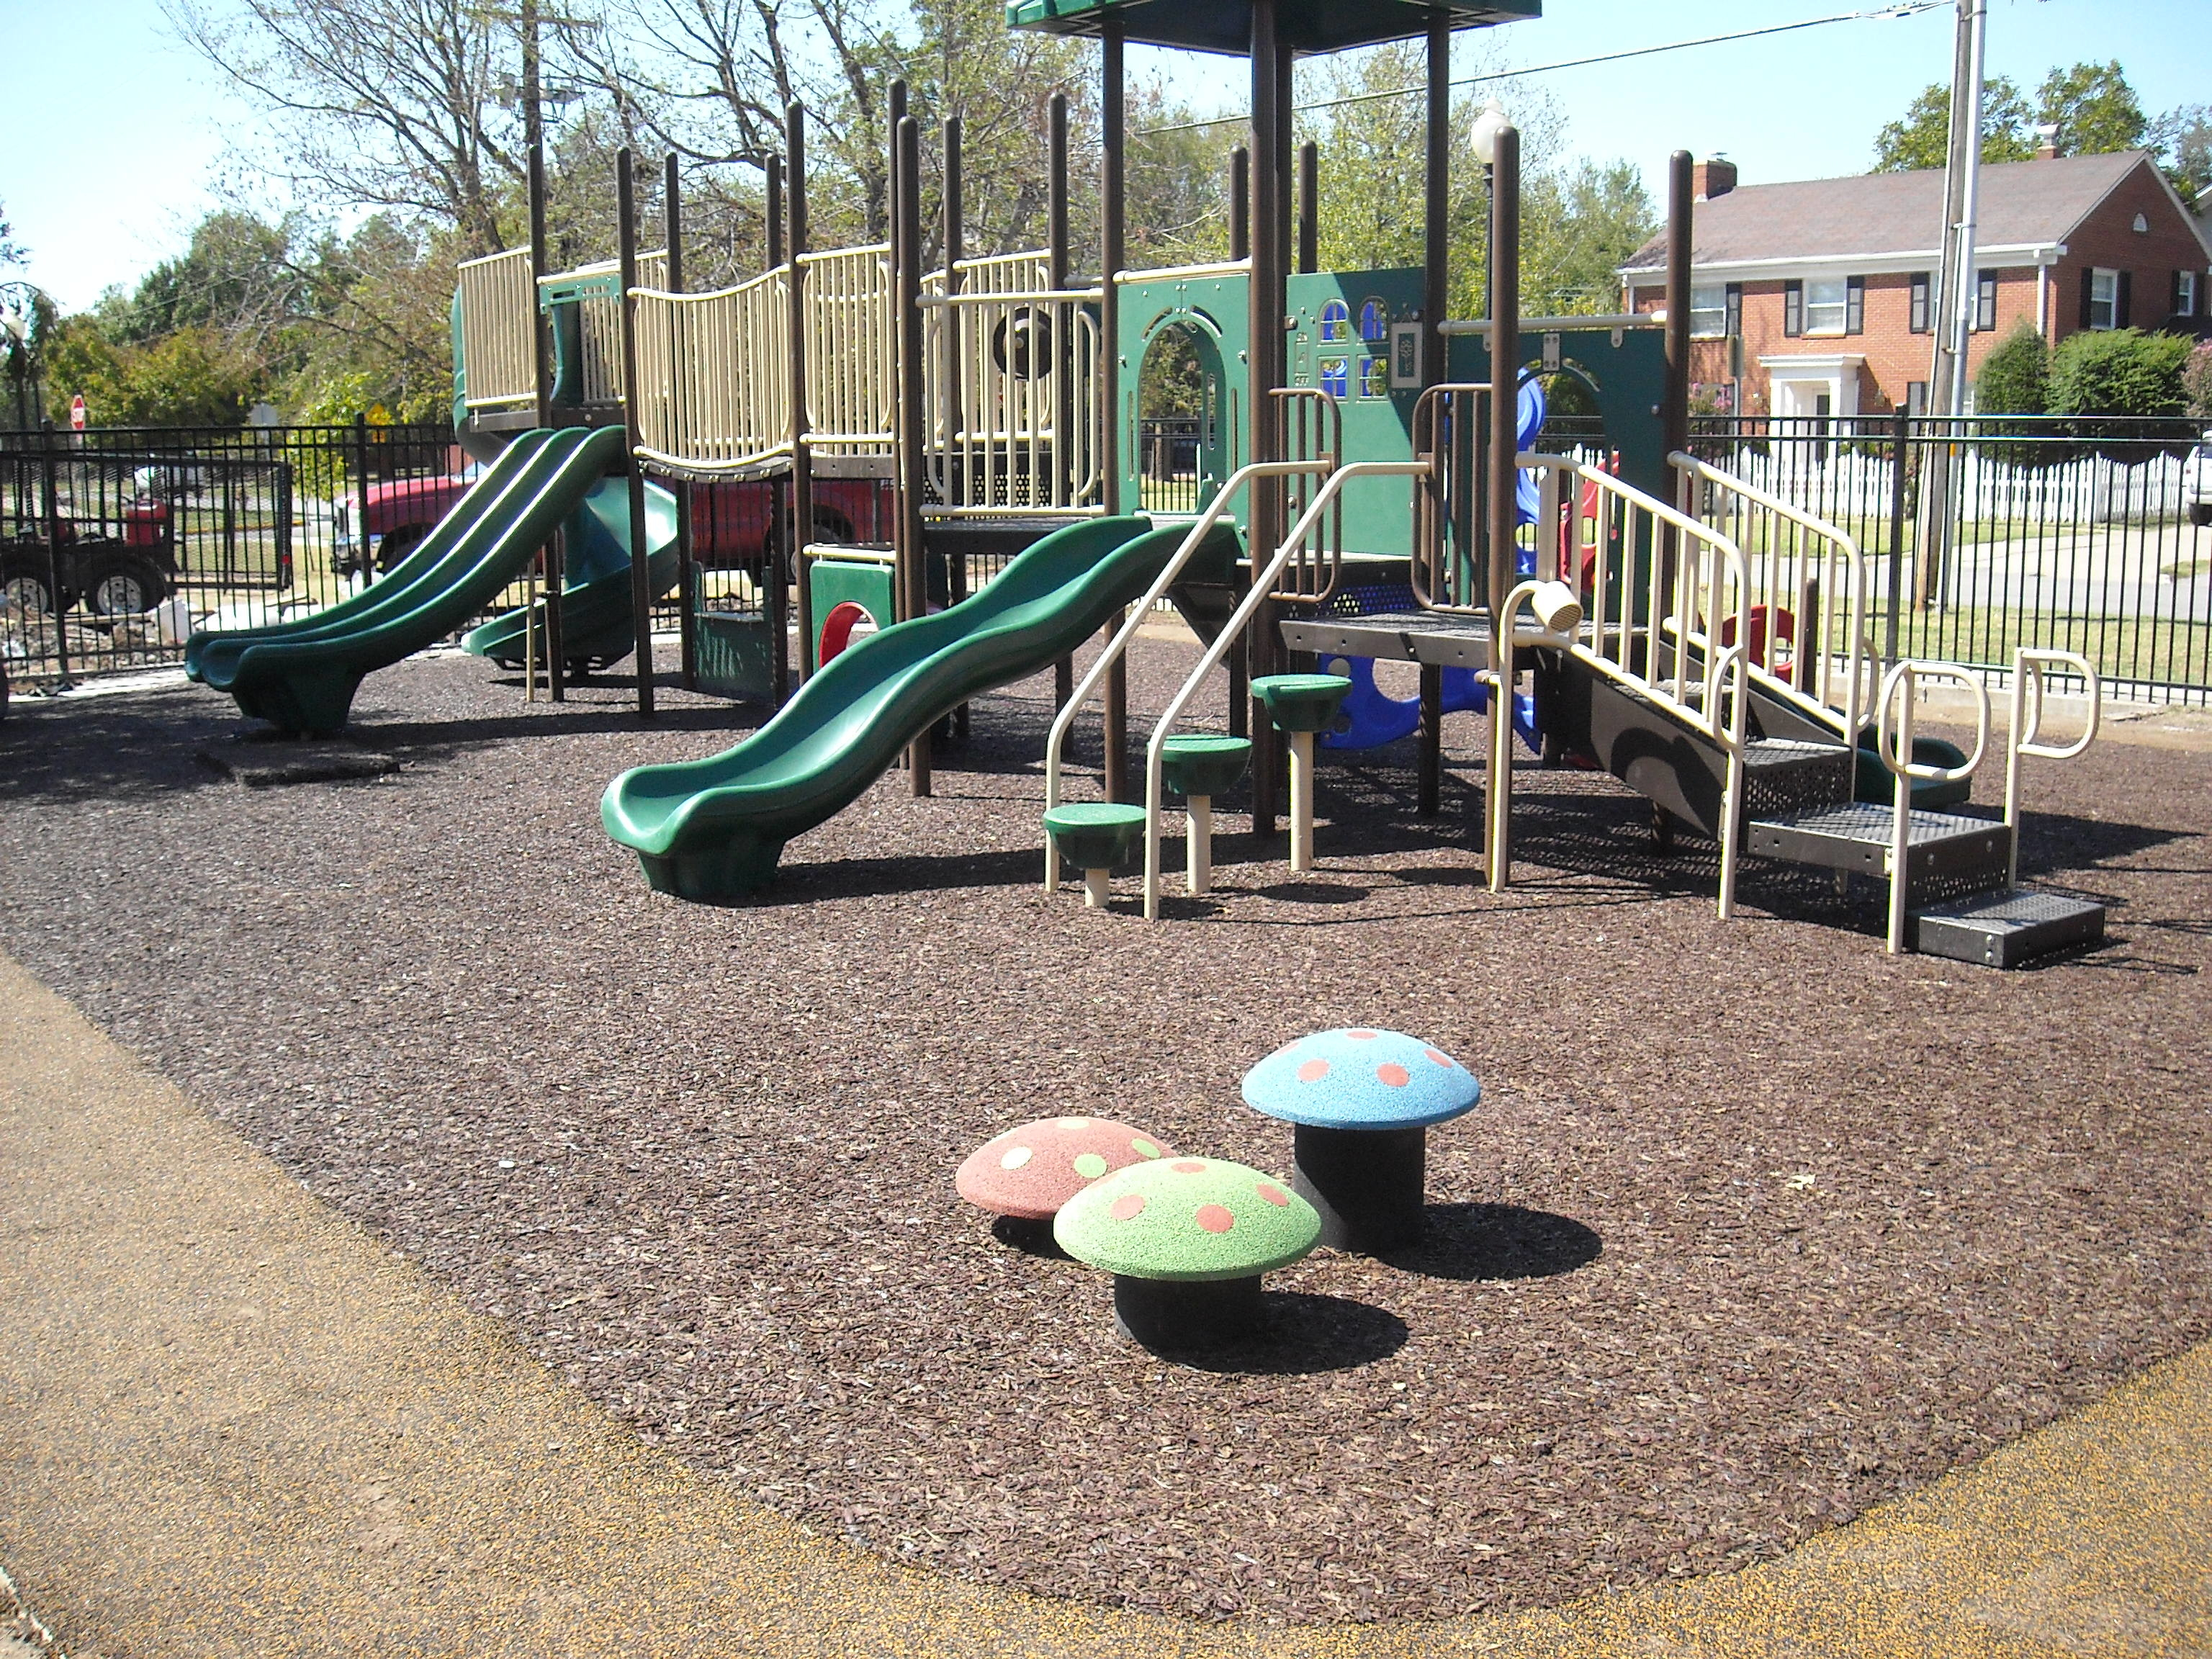 Noahs Park and Playgrounds, LLC image 11